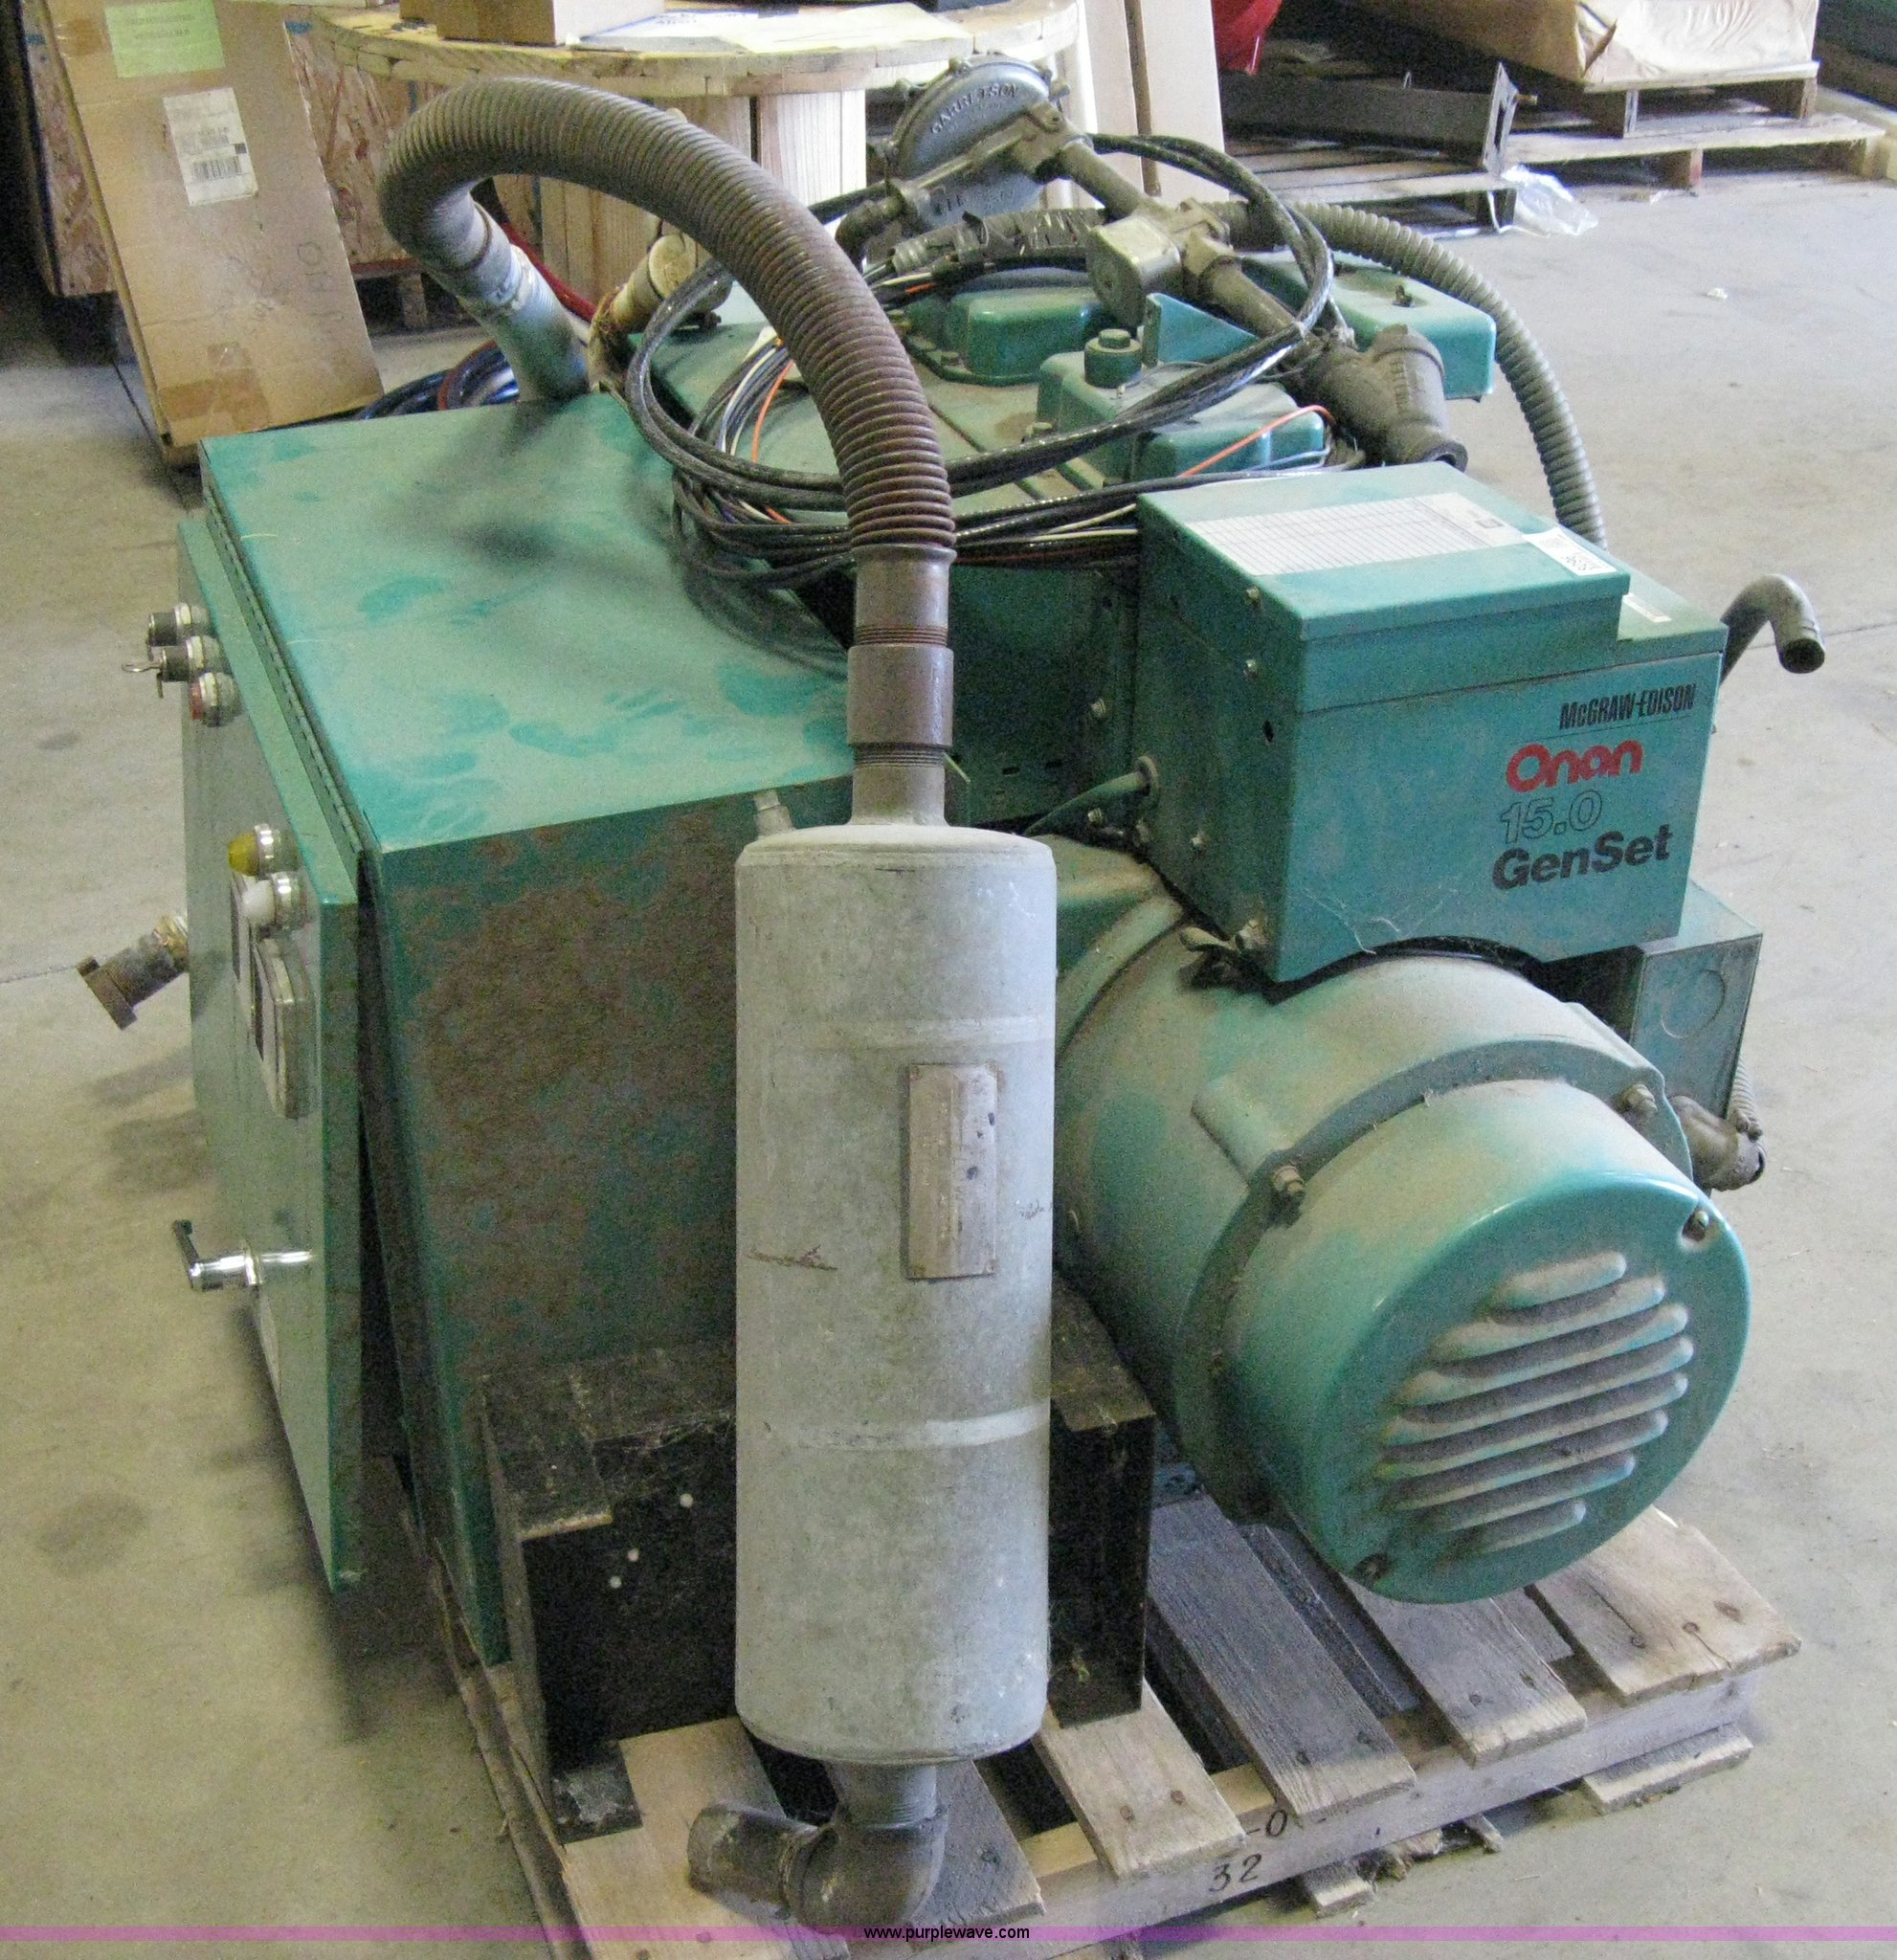 an 15 0 GenSet mercial generator Item 8096